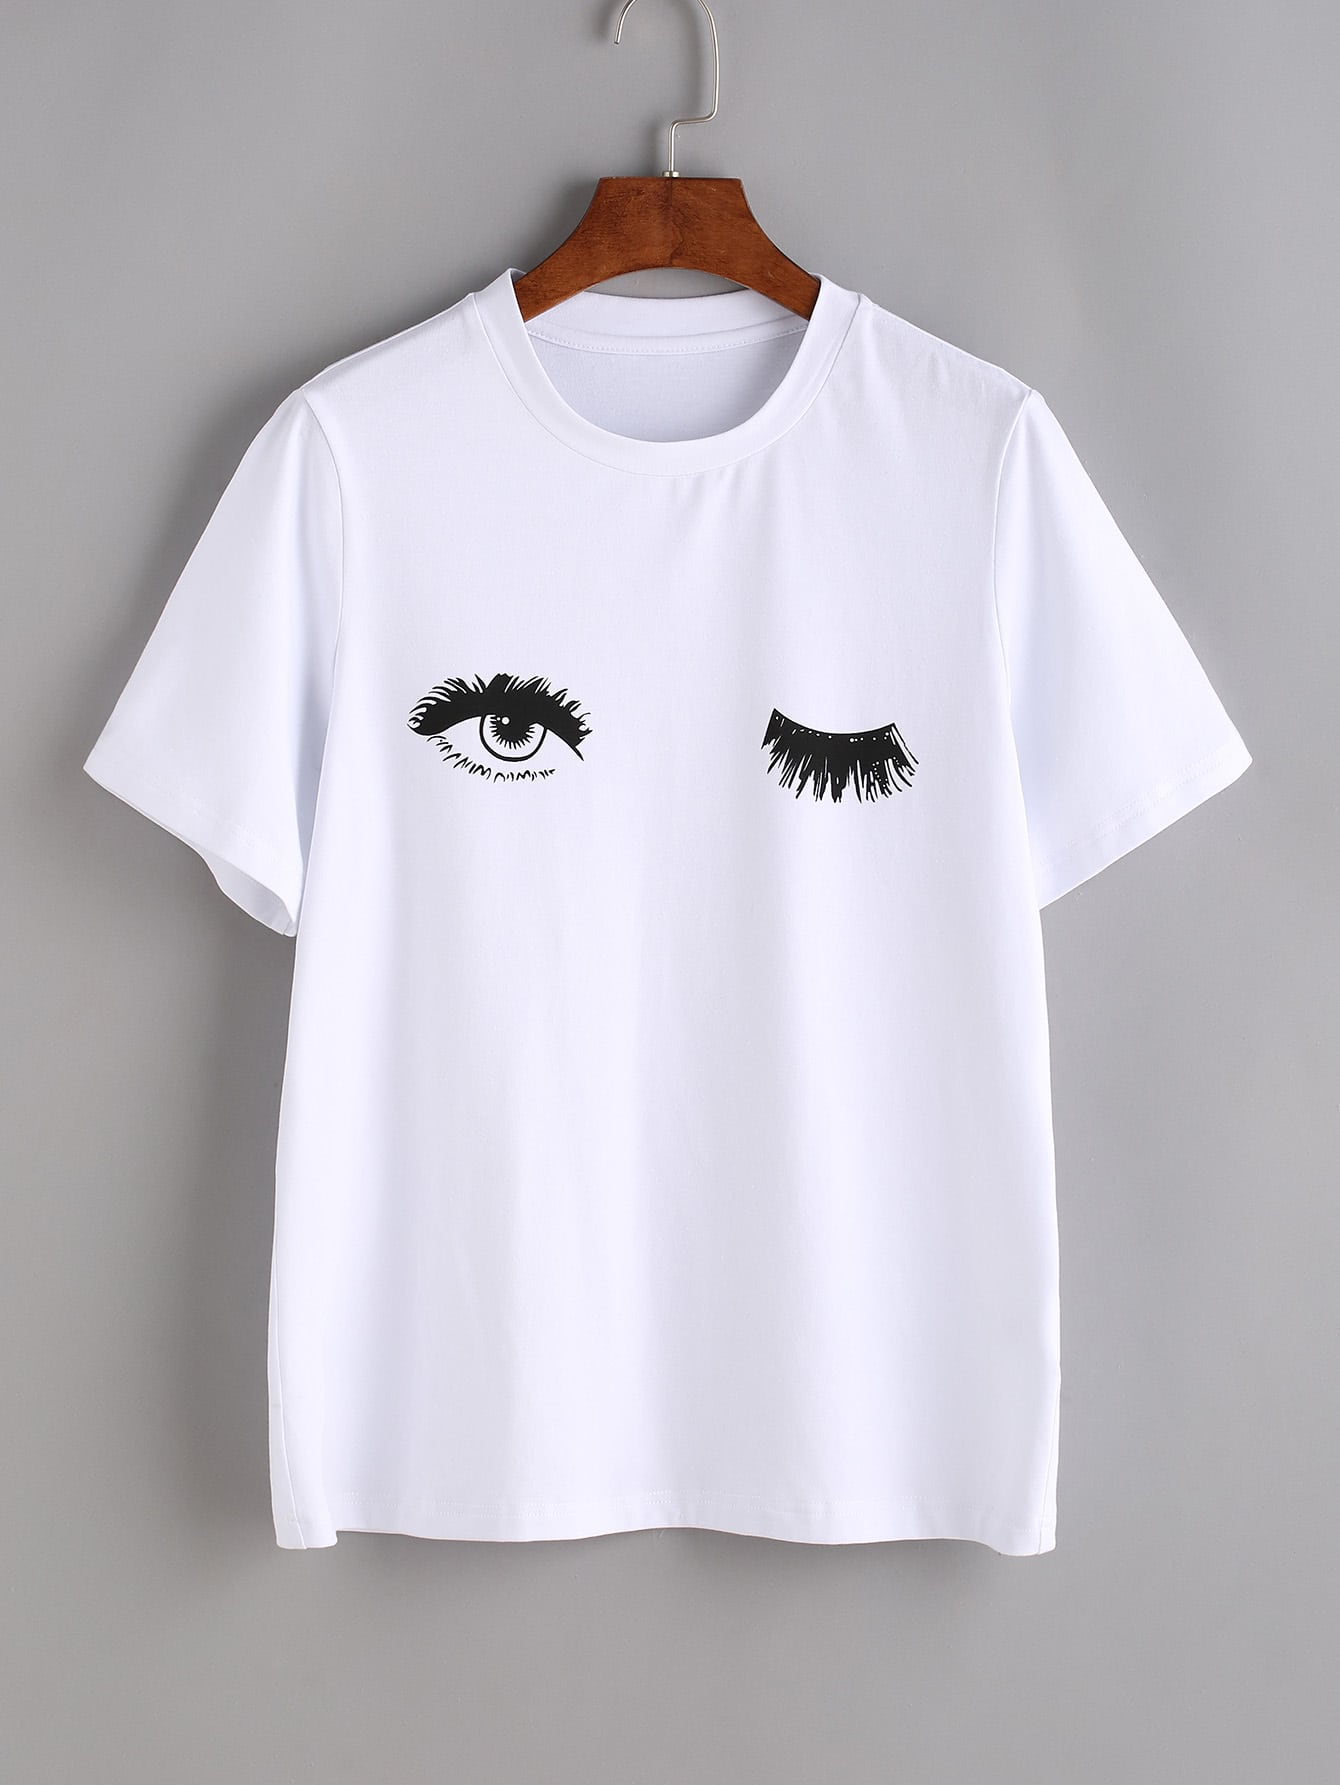 Wink Eyes Print Tee alabasta cute blinking wink glitter eyes